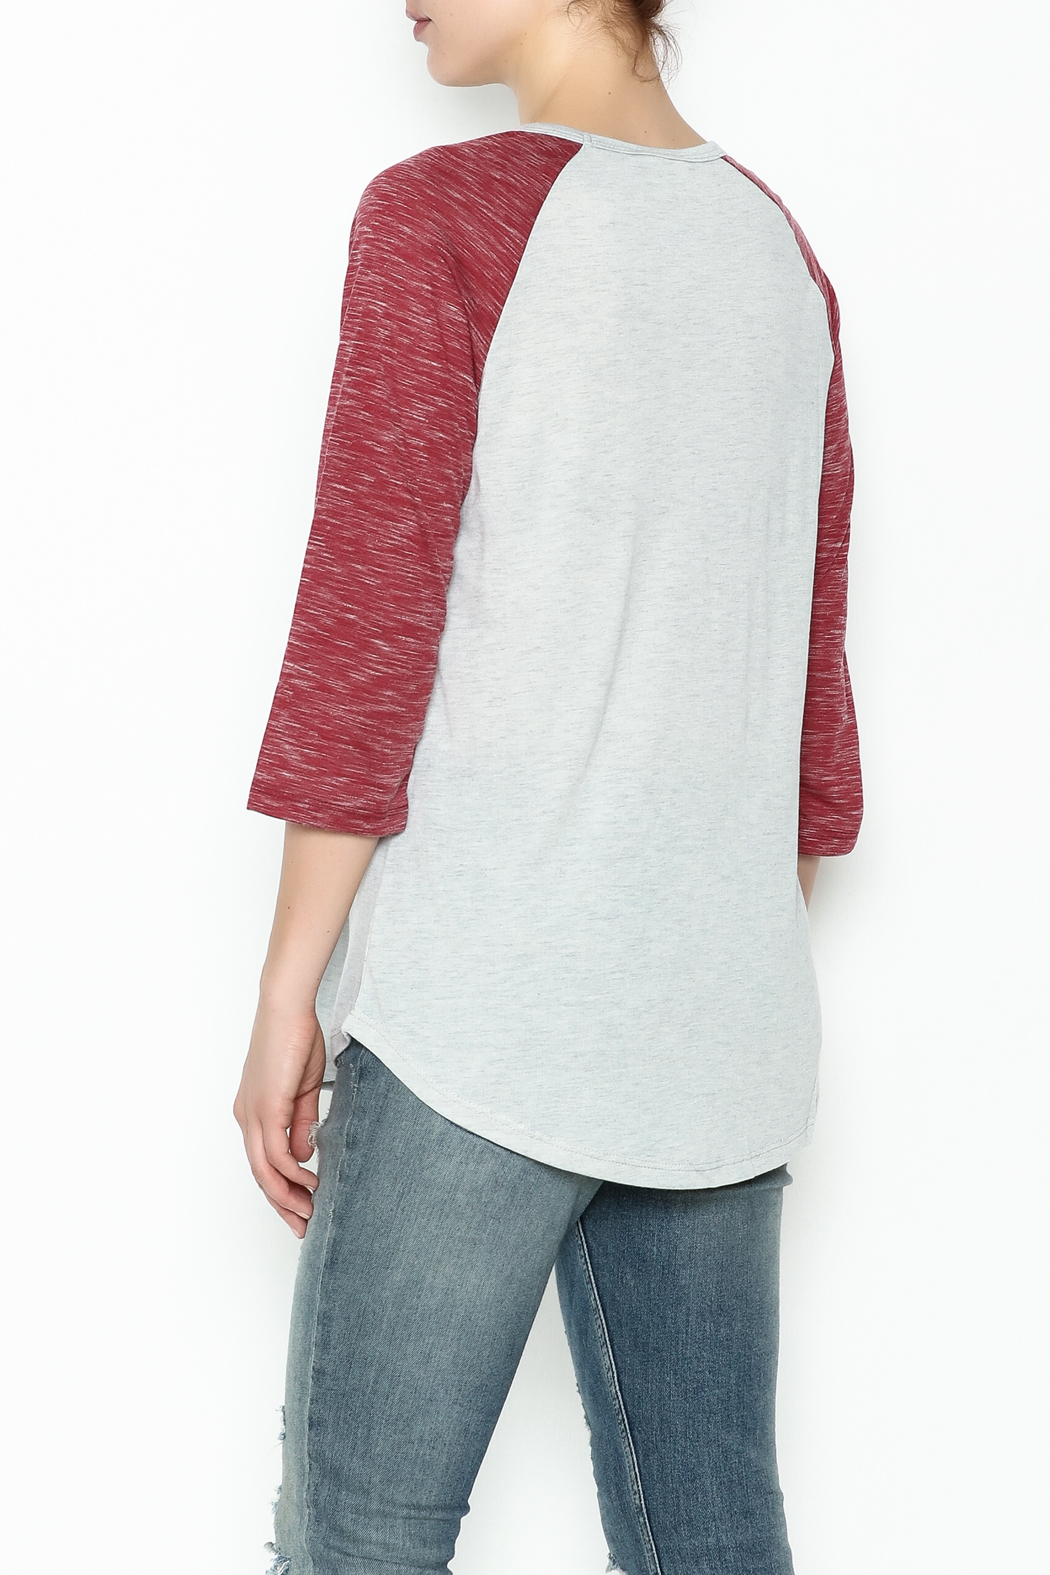 Daisey Ray Wine Long Sleeve Top - Back Cropped Image